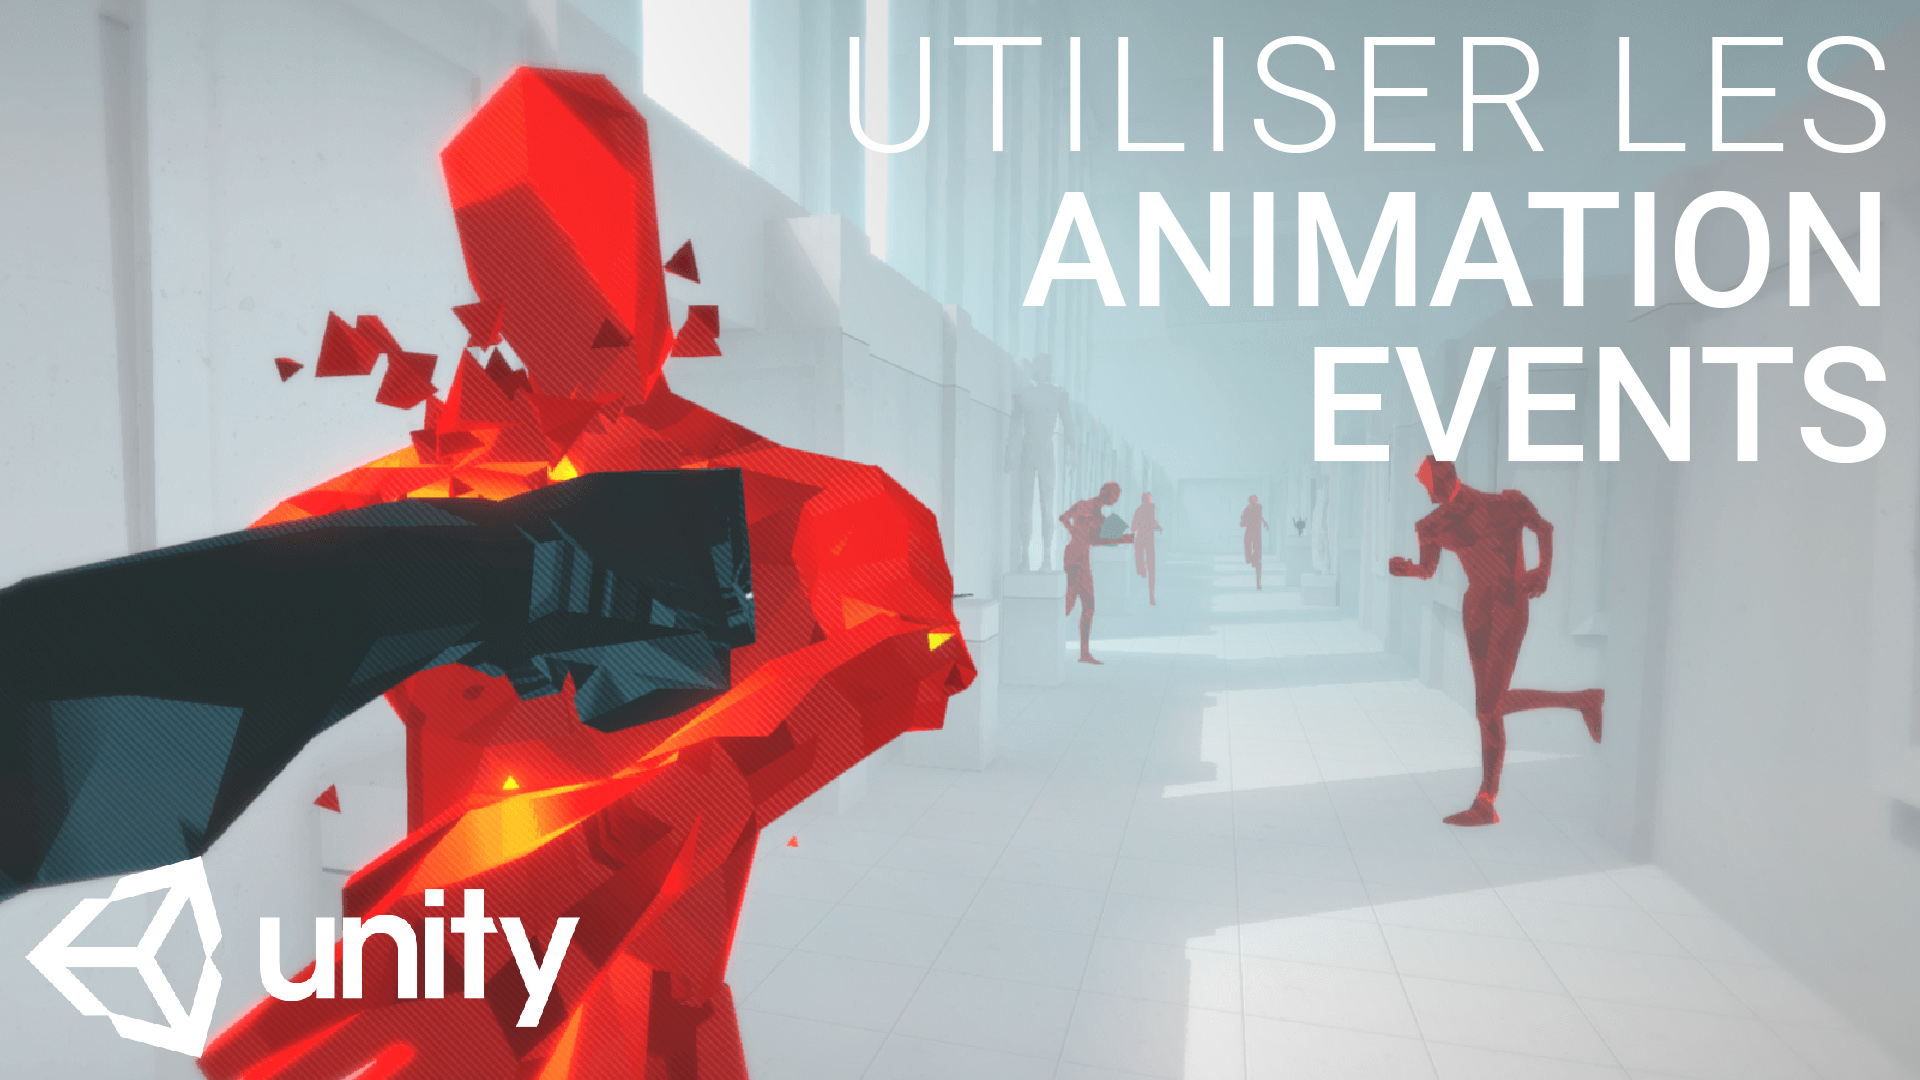 Animation Event : tutoriel unity en français